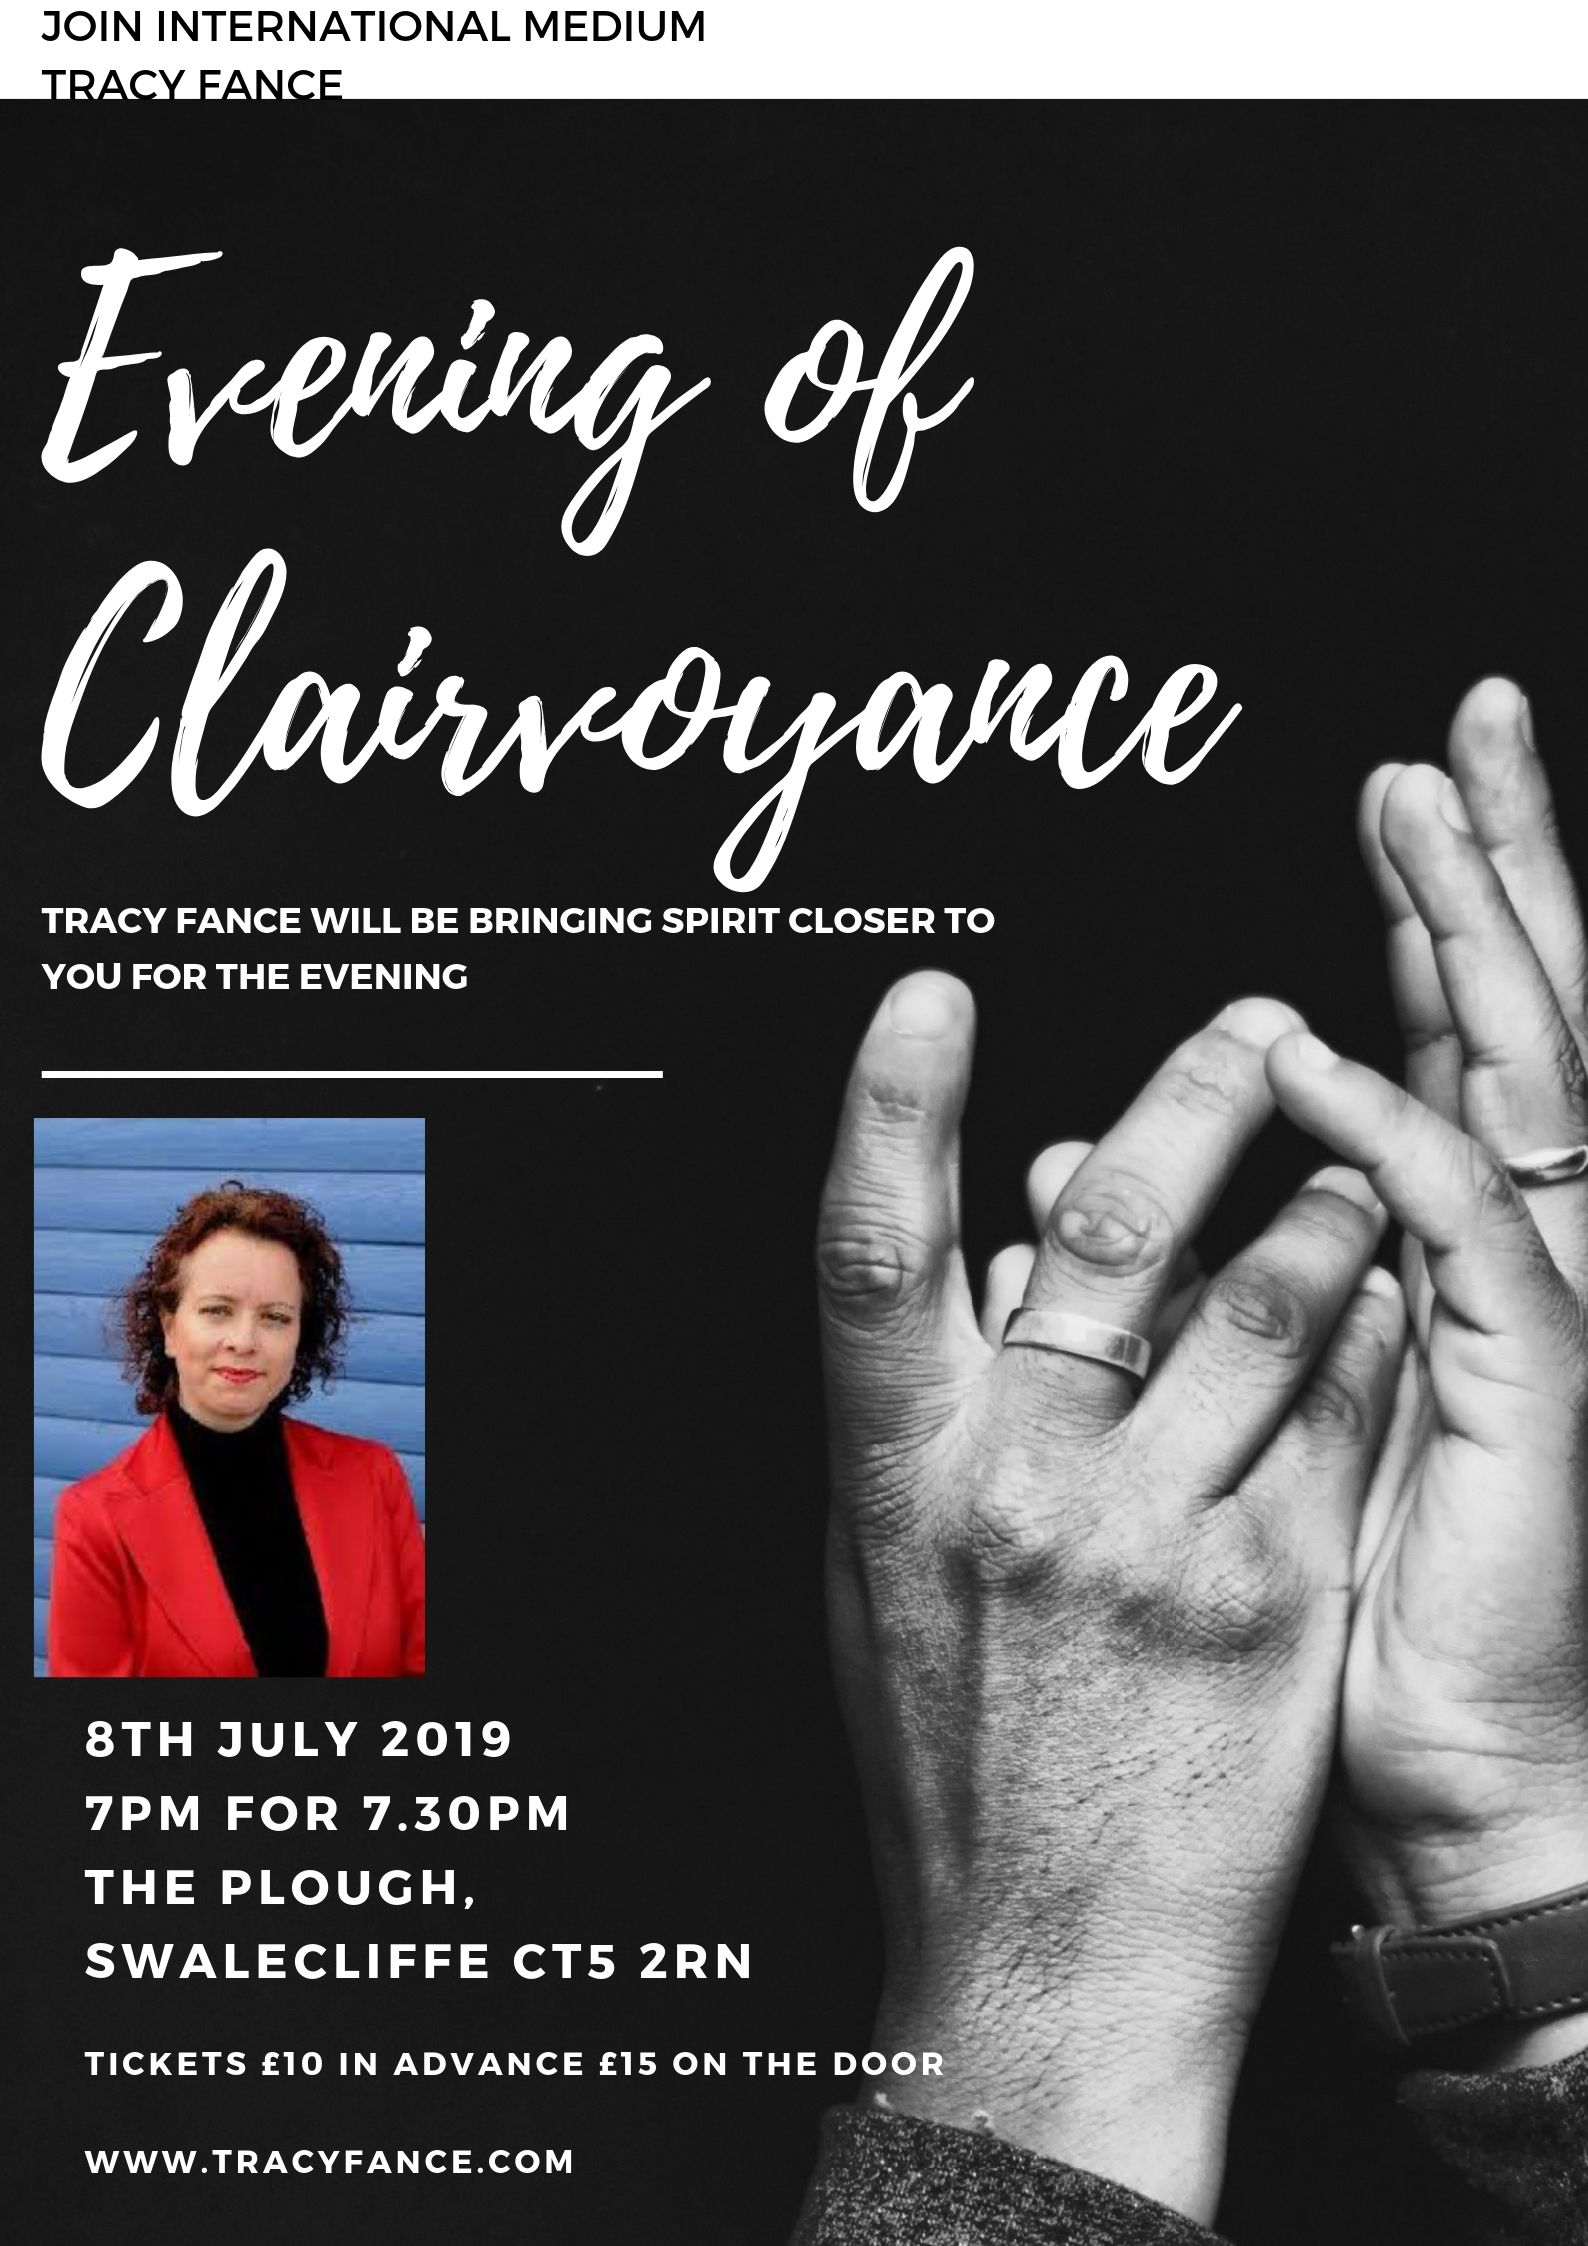 Evening of Clairvoyance with Tracy Fance